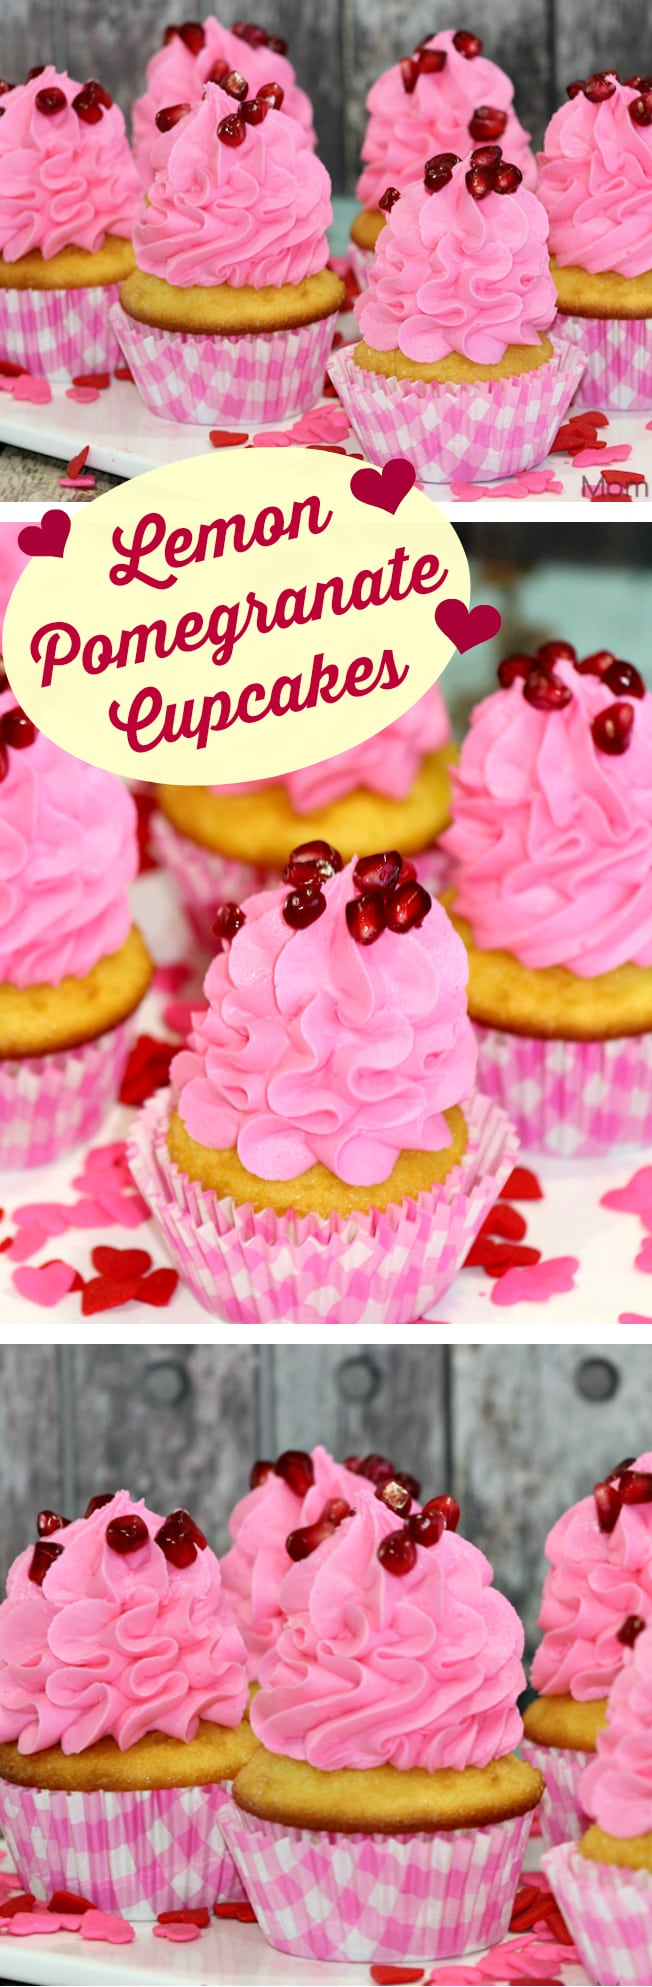 Lemon Pomegrante Cupcakes for Valentines day